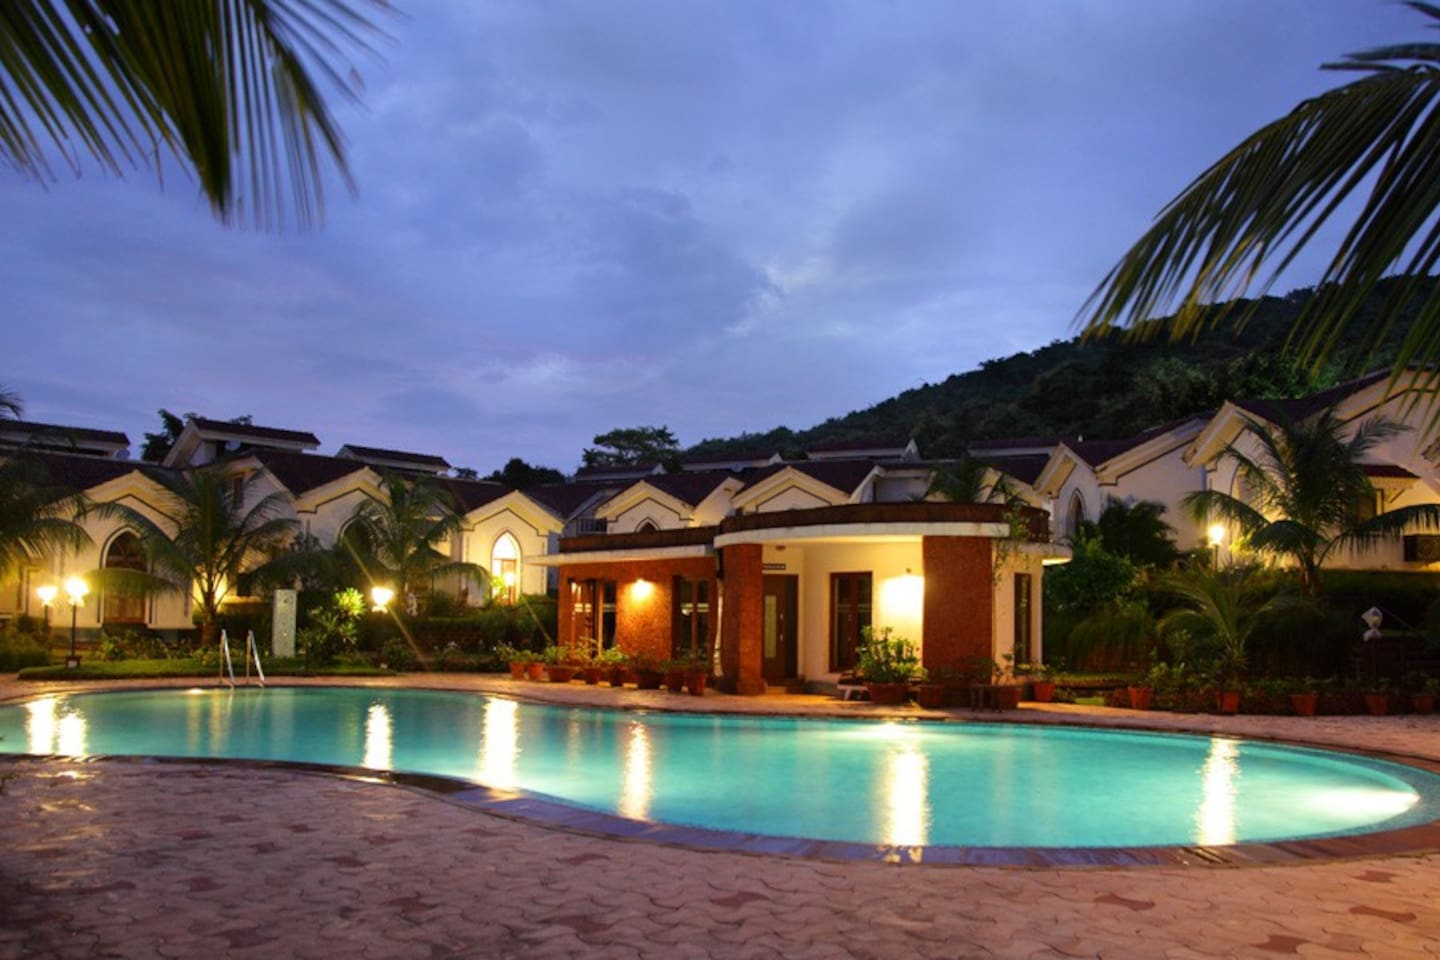 Evening view of pool area - serene & romantic !